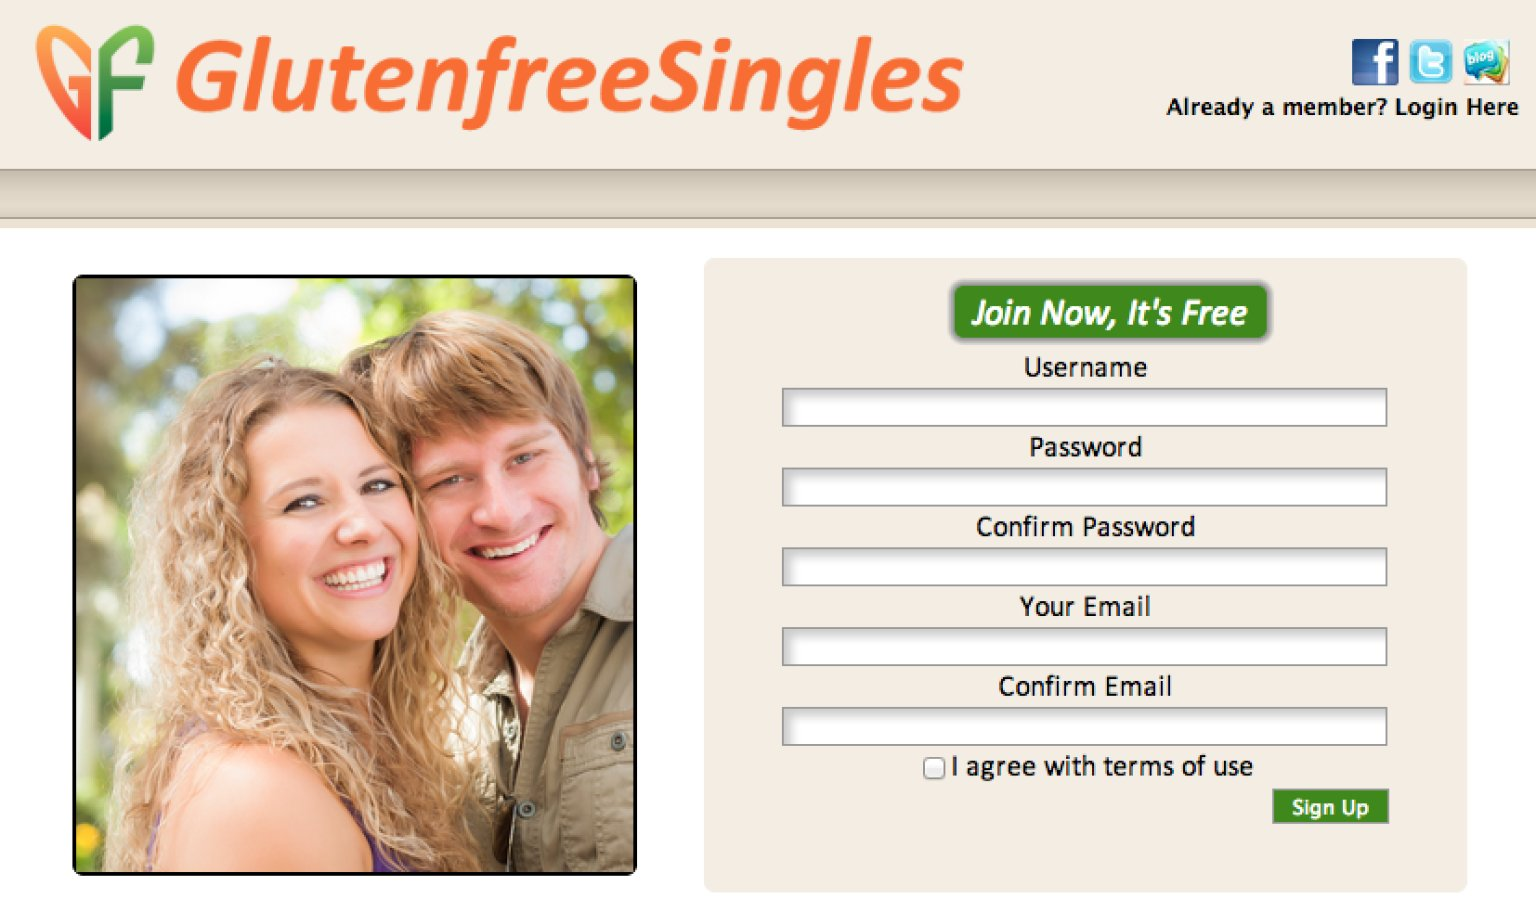 What are some good free dating websites